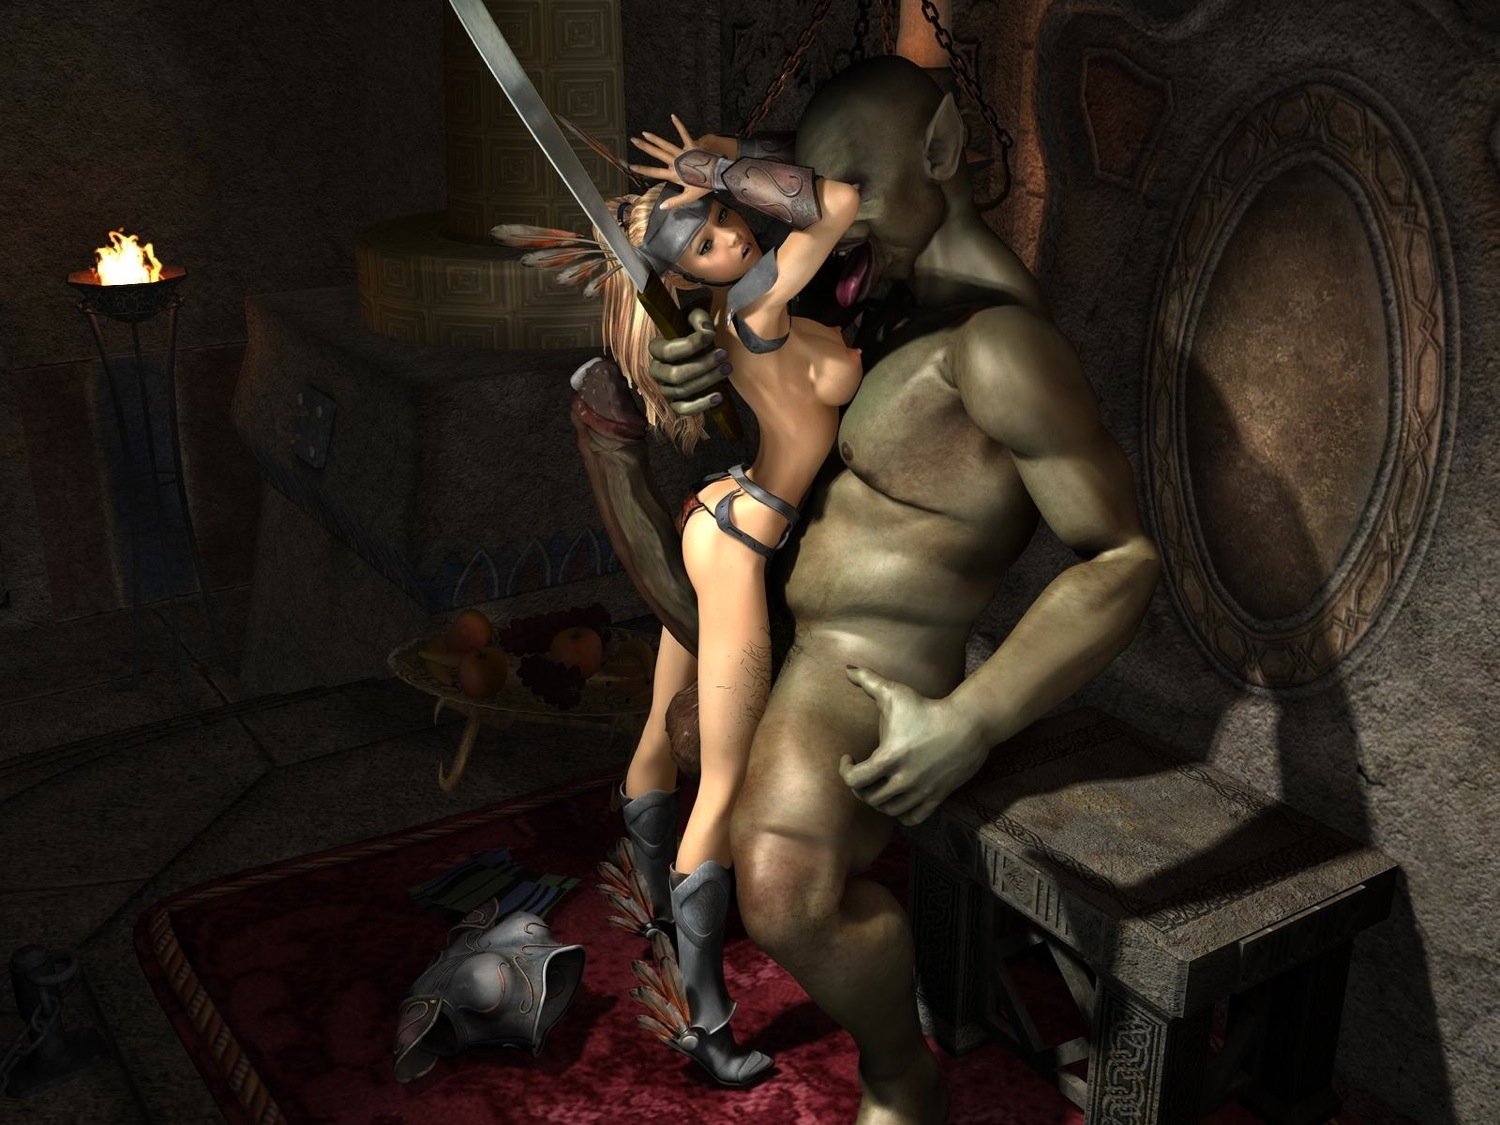 Wallpaper demon nude 3d xxx galleries